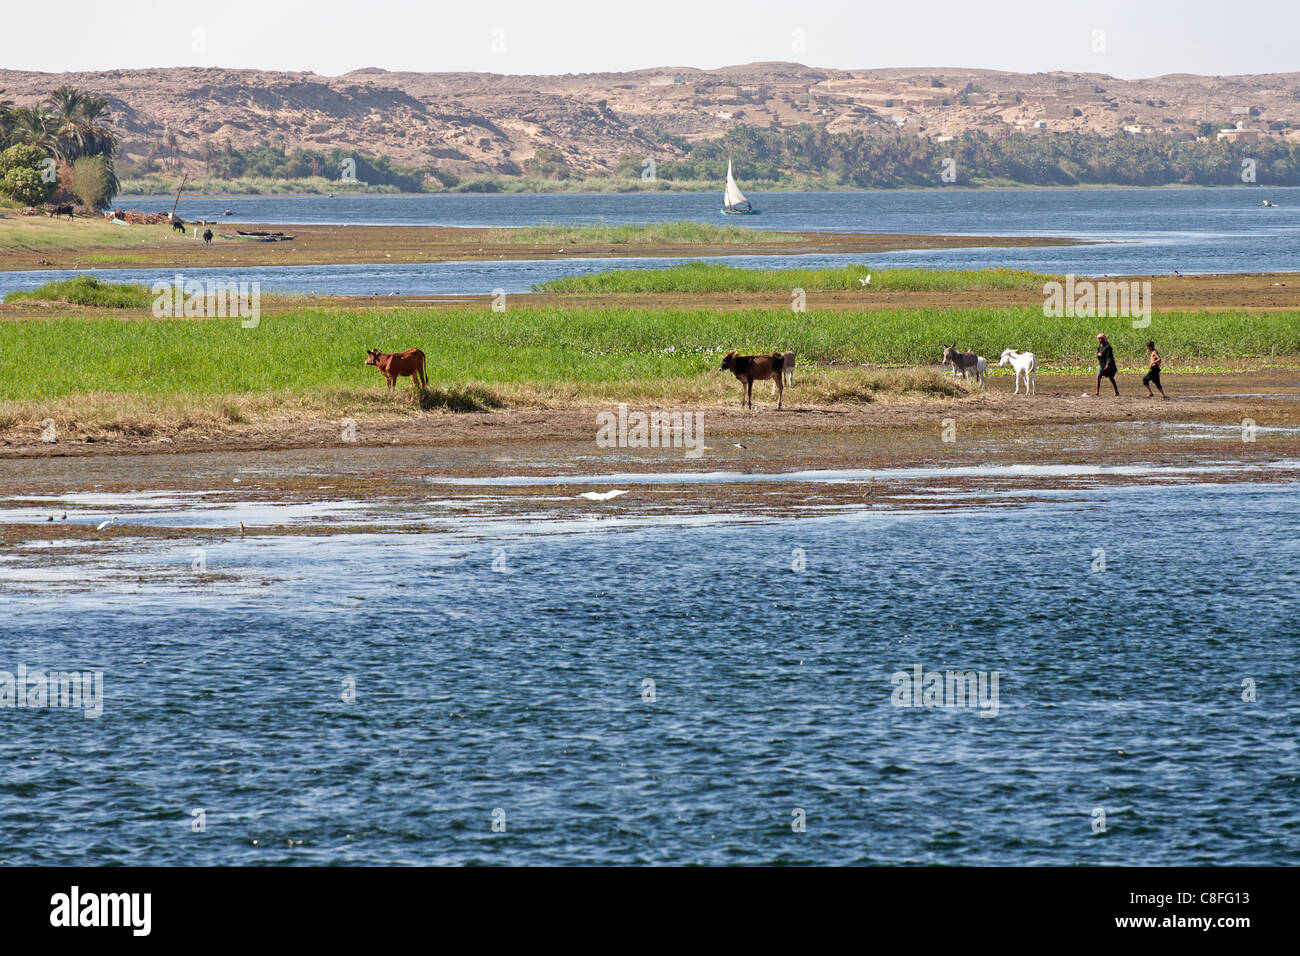 A small island in the Nile showing cattle grazing on riverbank with a distant felucca and desert mountain range, - Stock Image